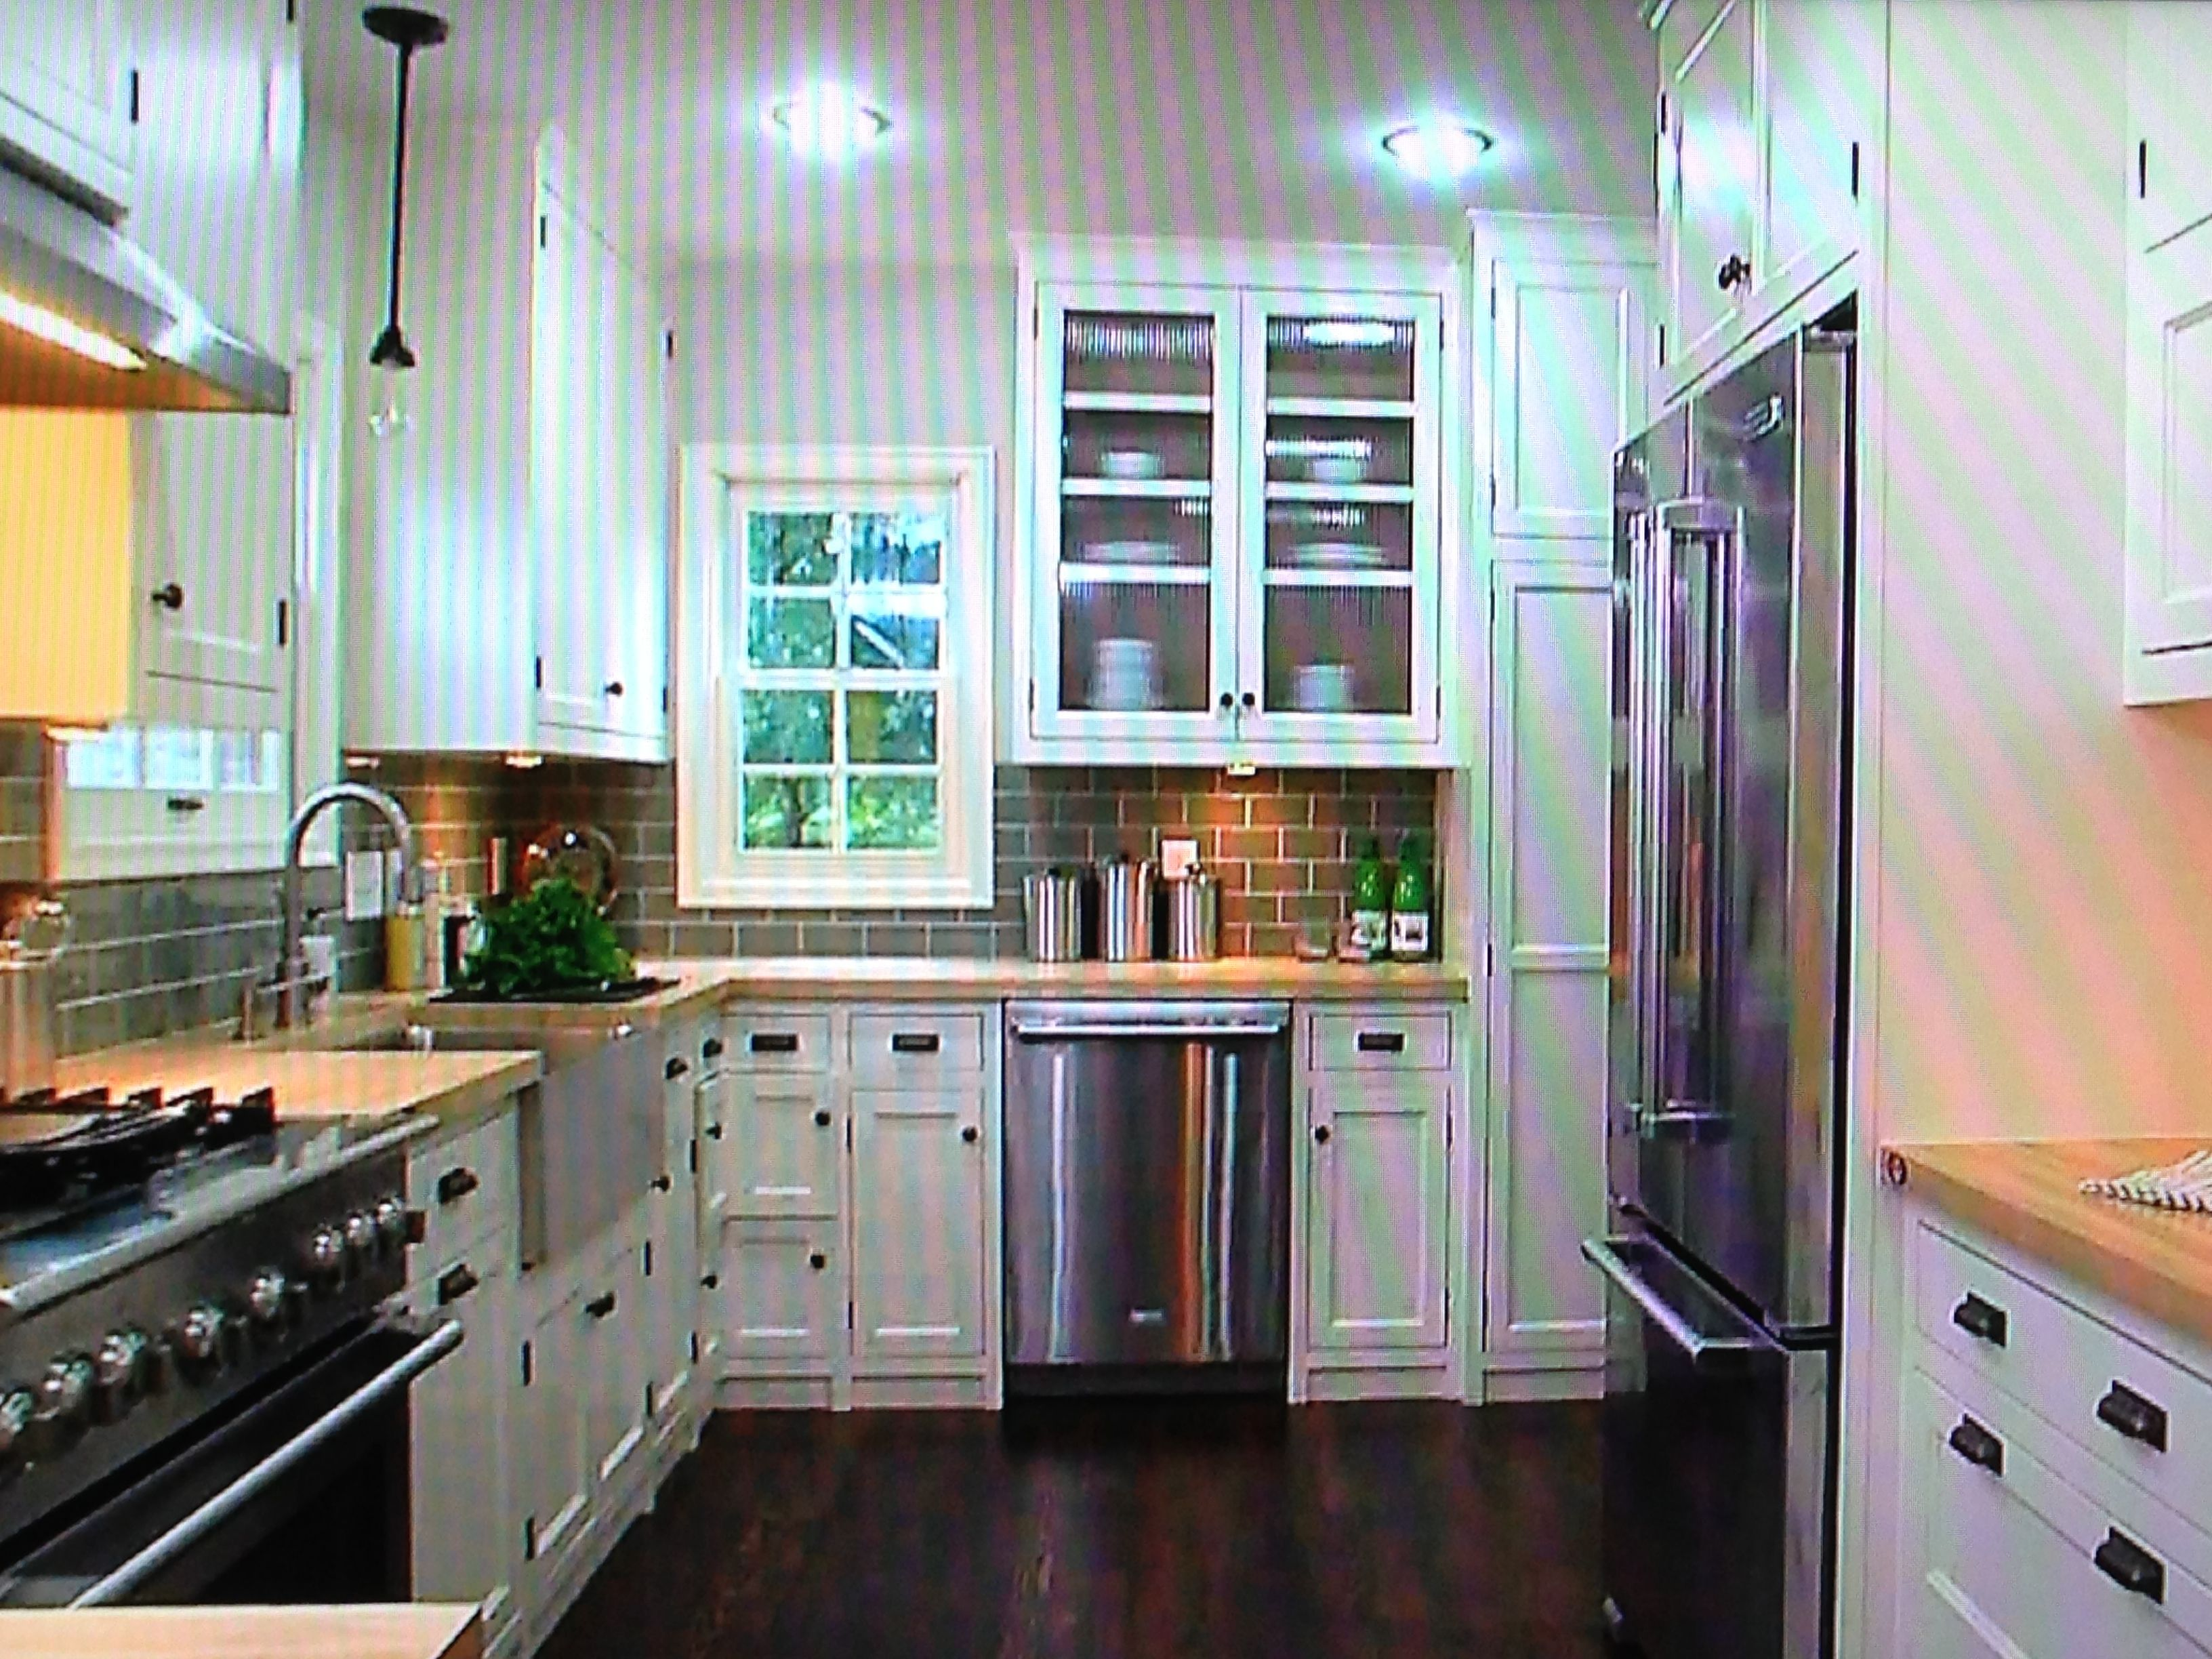 Rehab Addict Kitchen From Latest Episode